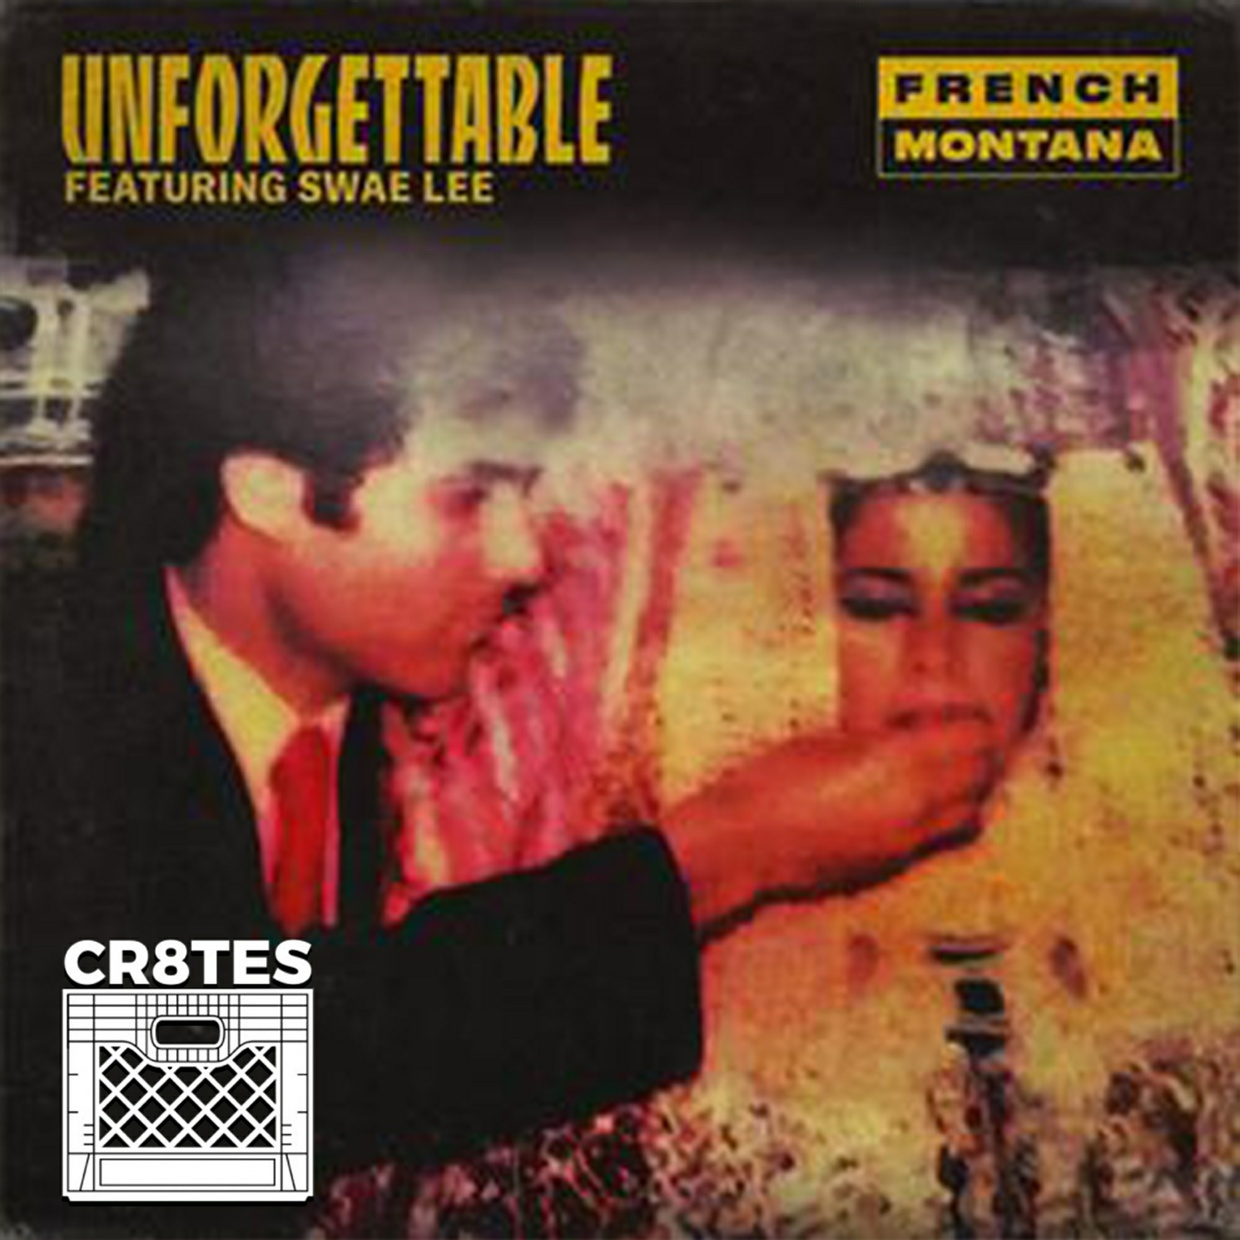 French Montana - Unforgettable ft. Swae Lee (Cr8tes Mini Kit)